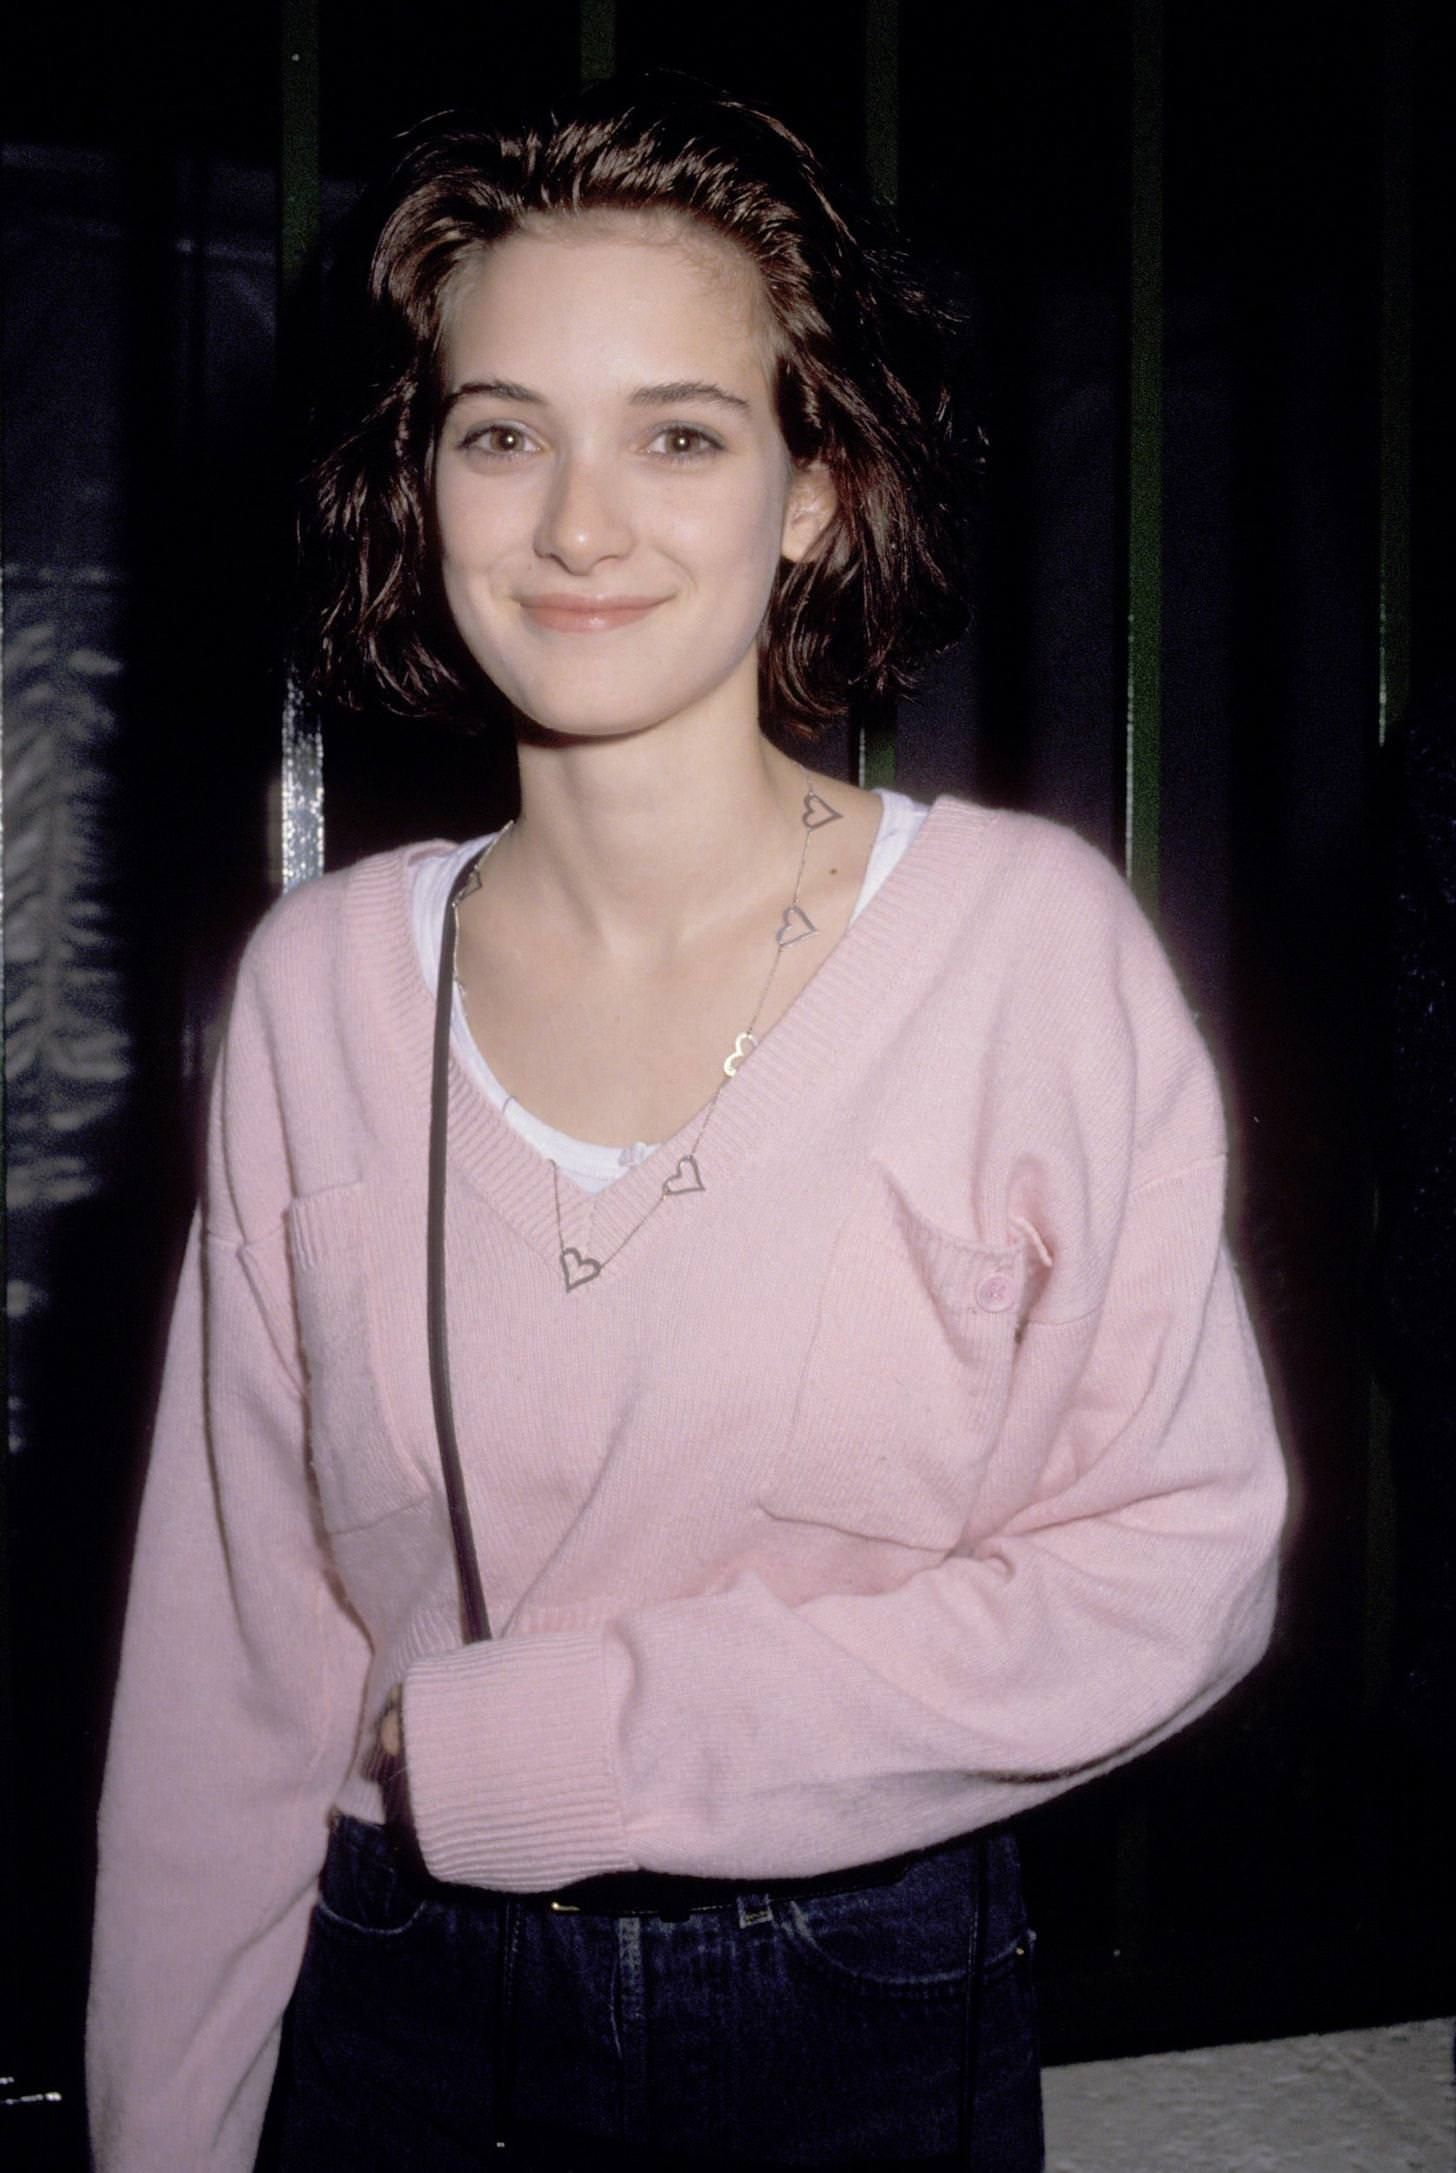 winona ryder outfits 50+ best outfits | 90s fashion, Winona ryder style, Fashion